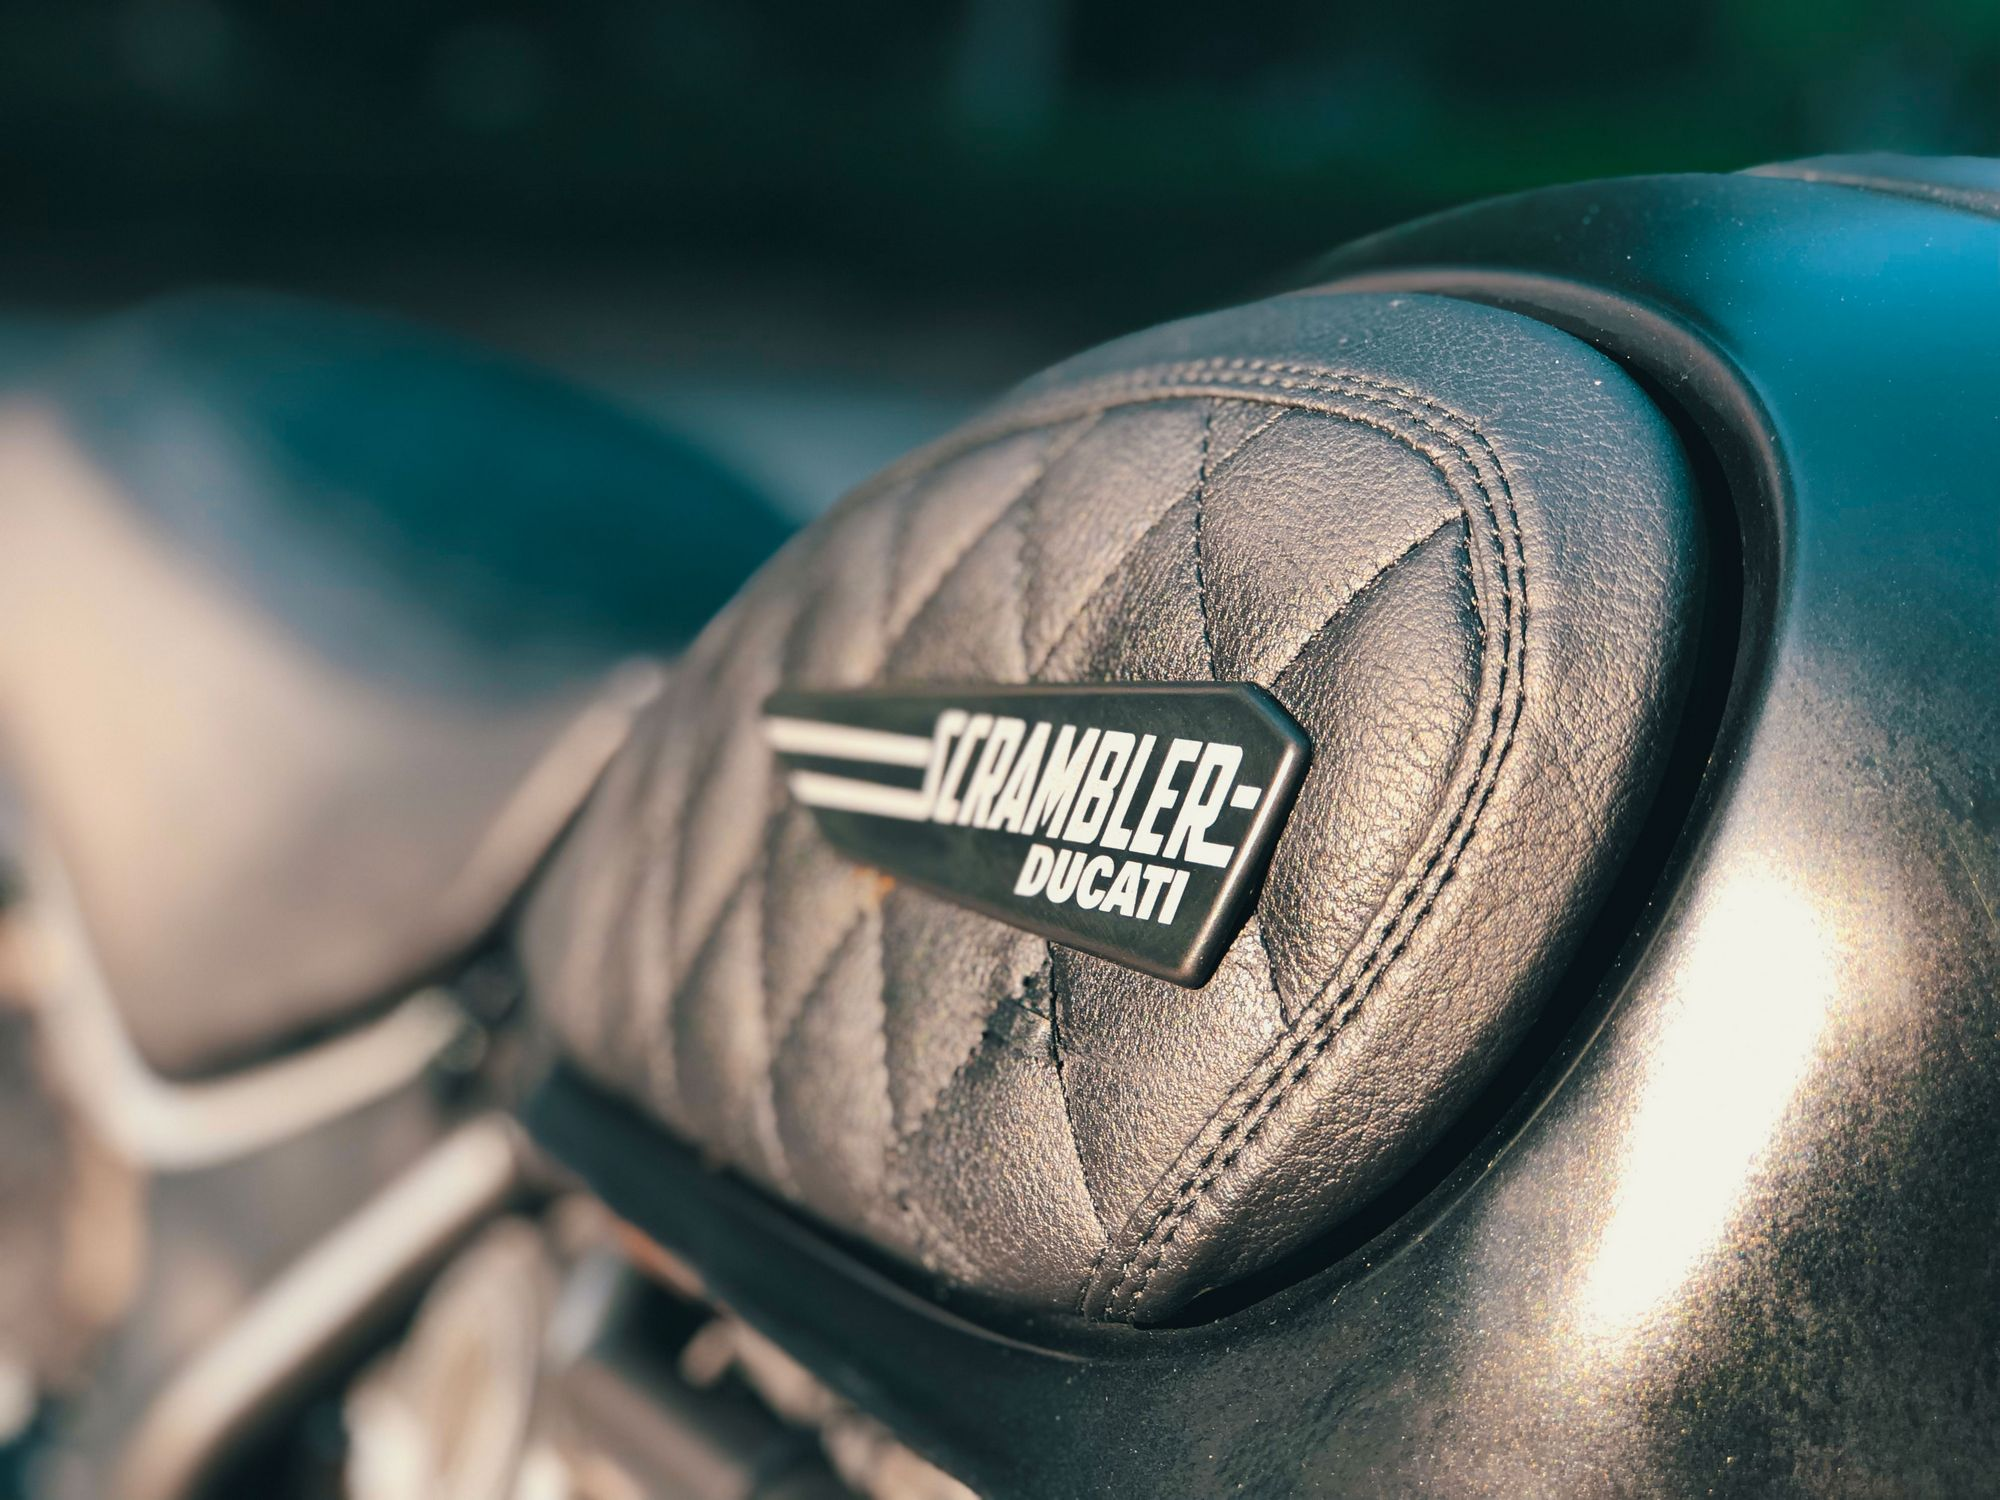 DUCATI scrambler full throttle - 2015